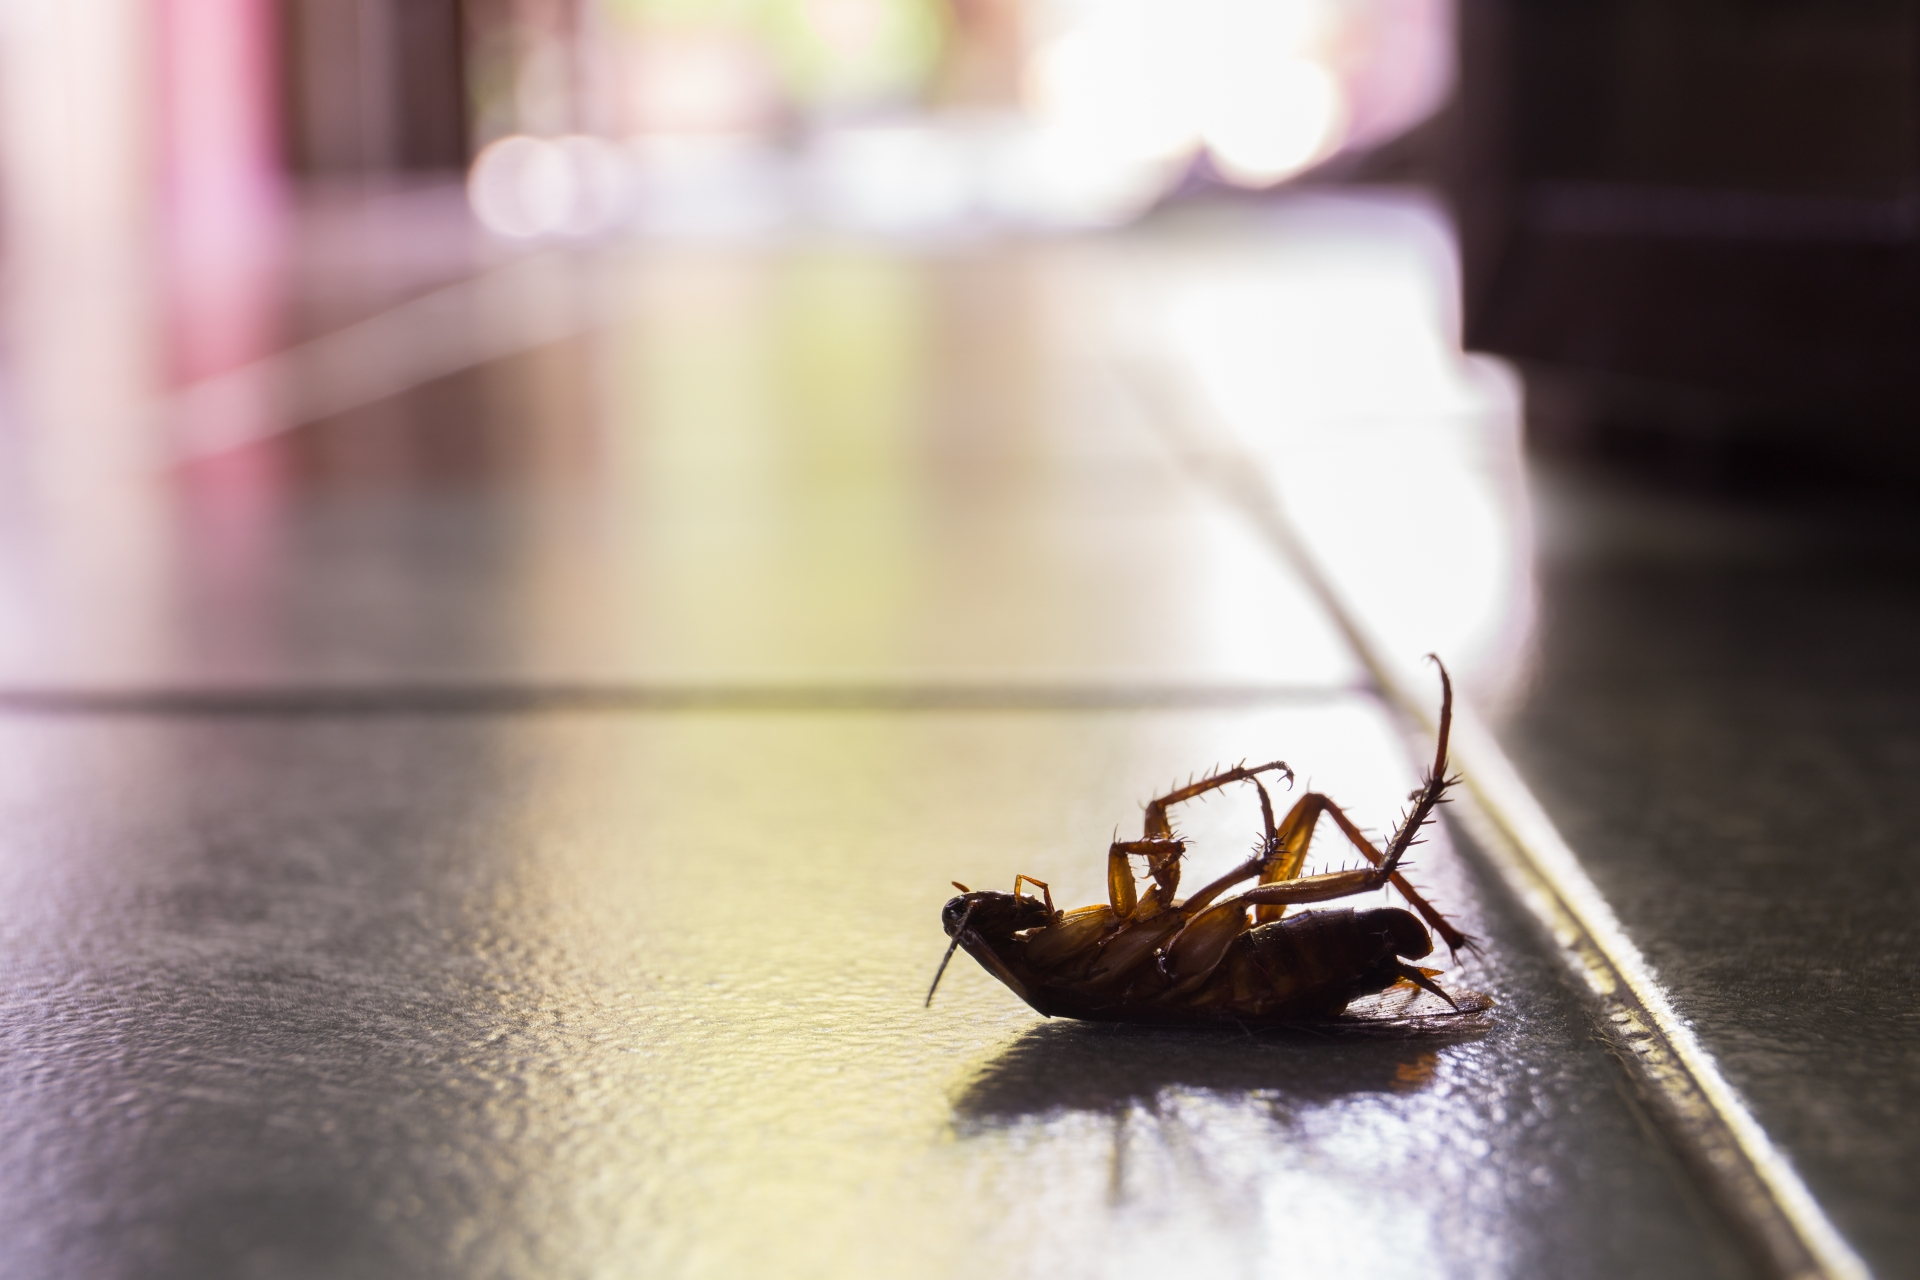 Cockroach Control, Pest Control in Clapham, SW4. Call Now 020 8166 9746